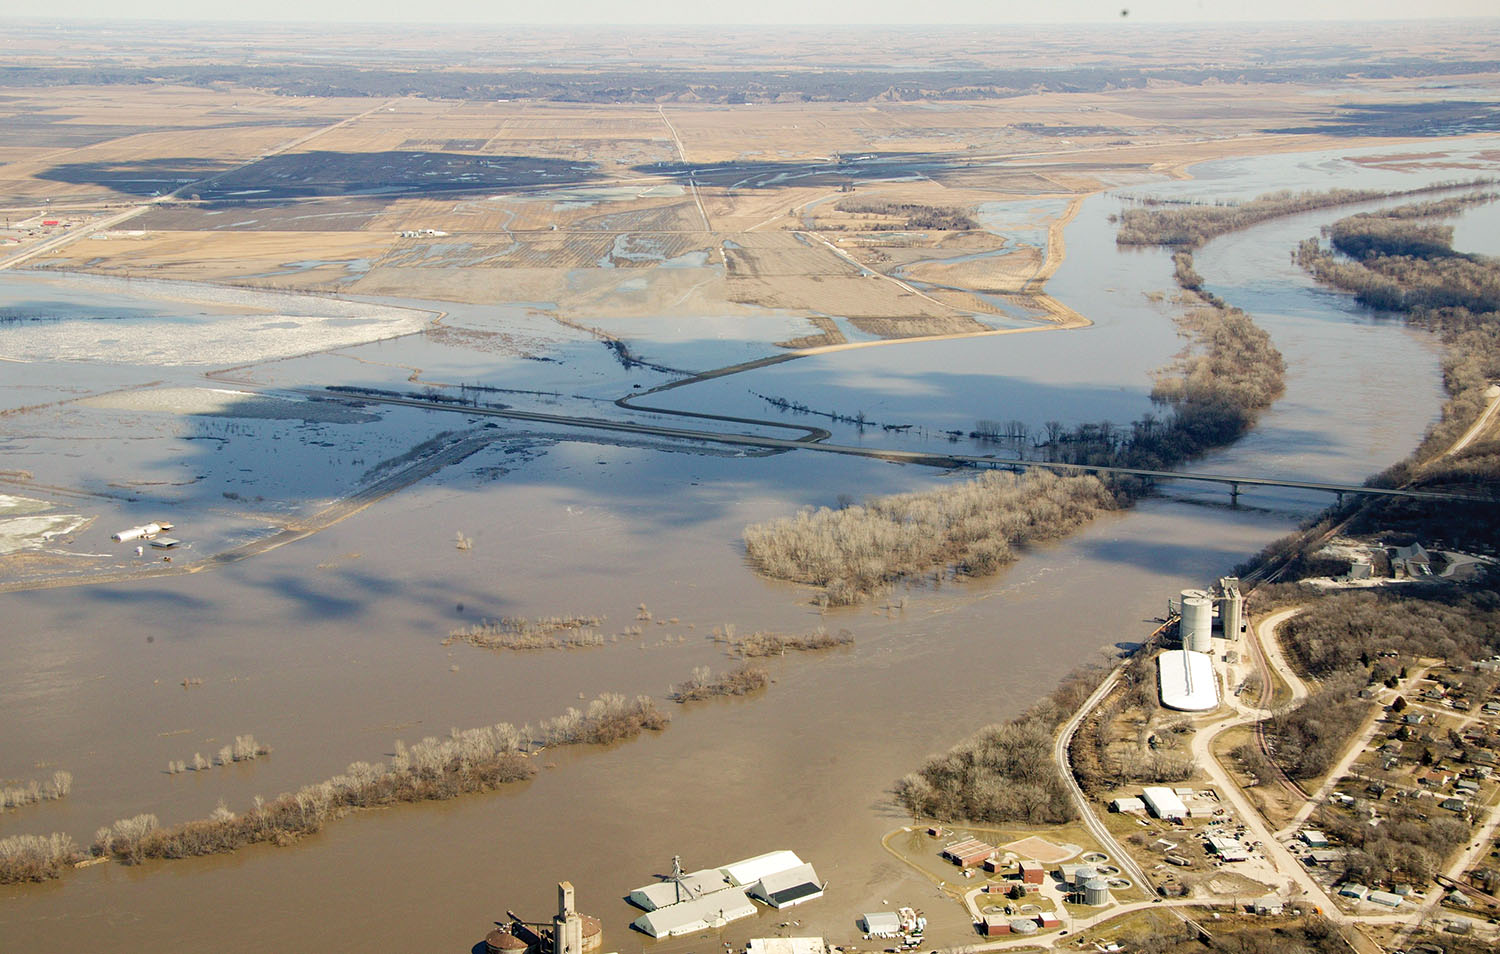 An aerial view of flooding from overtopping of levee L575 near Nebraska City, Neb., on March 16. The Missouri River reached levels never before recorded as the flooding Platte River entered the Missouri at Plattsmouth, Neb. (Photo courtesy of Omaha Engineer District)